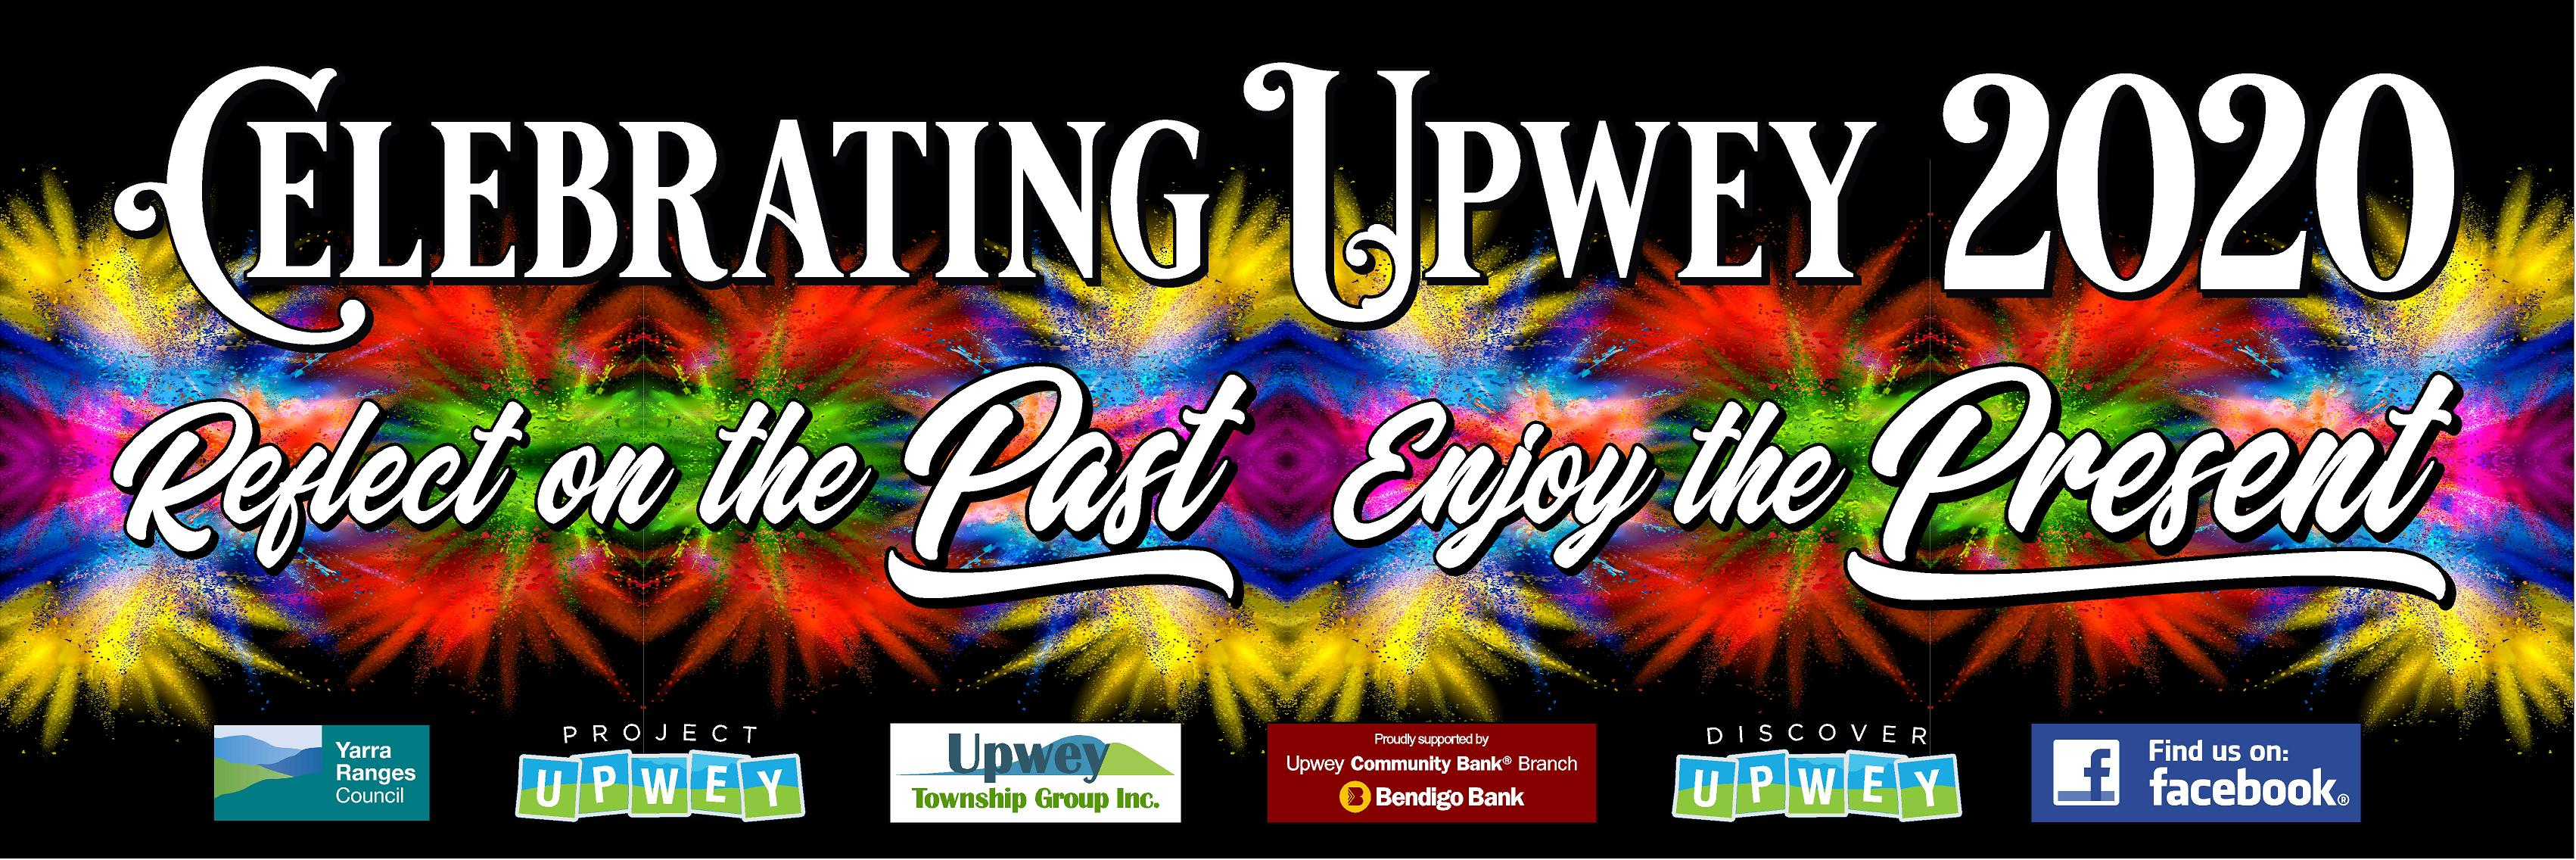 Celebrating Upwey 2020